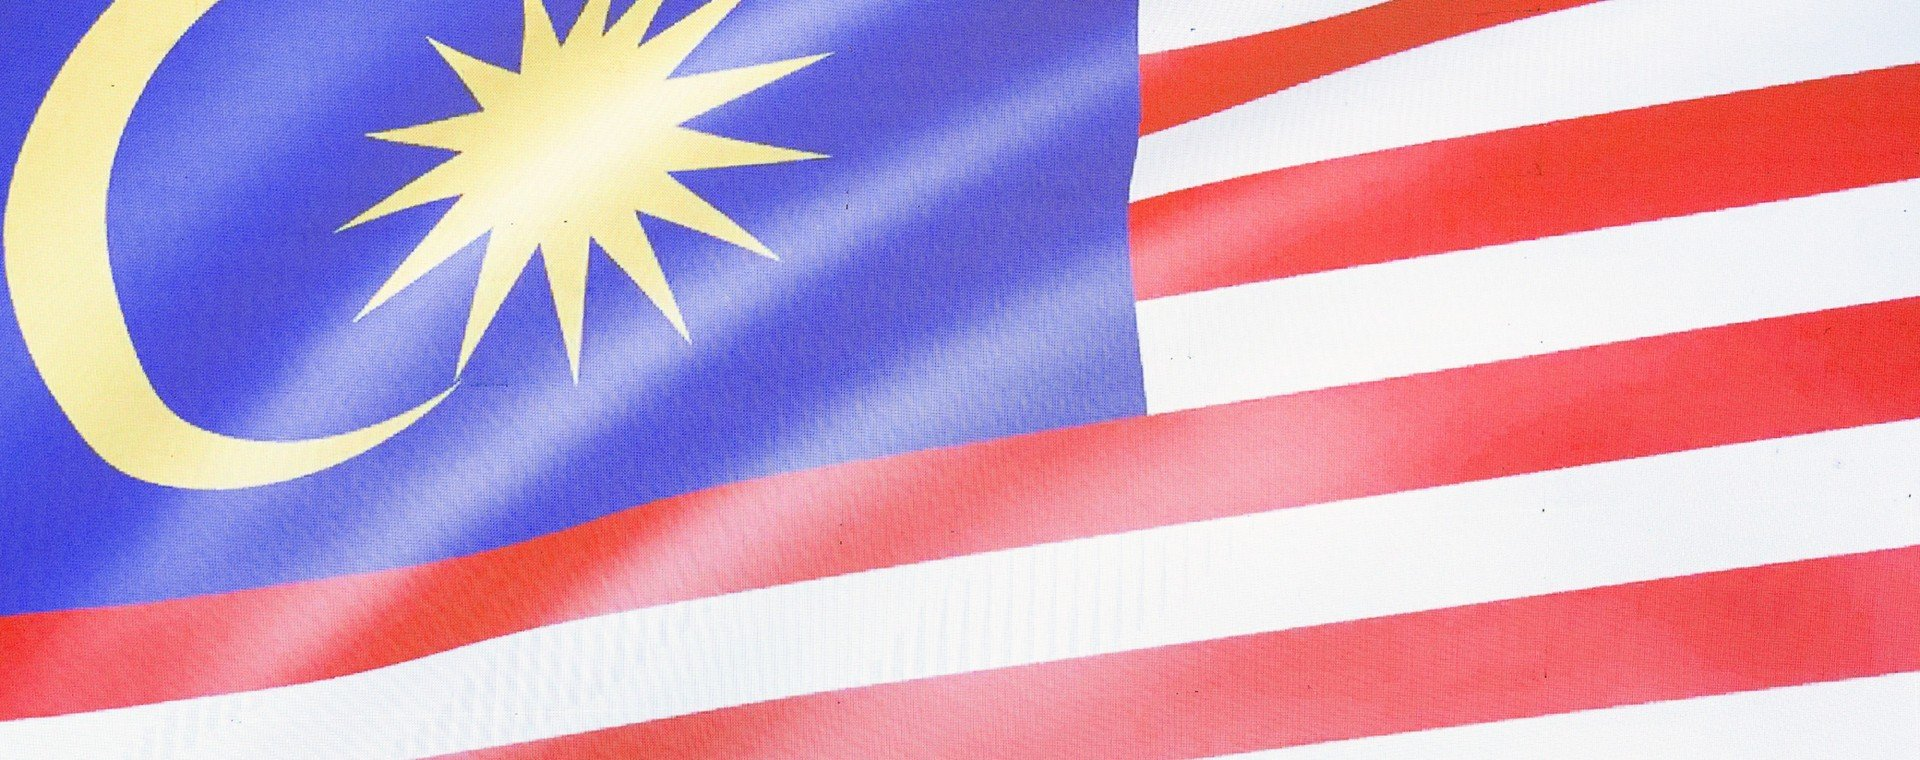 Japan honours Malaysian PM Mahathir Mohamad, hoping for an